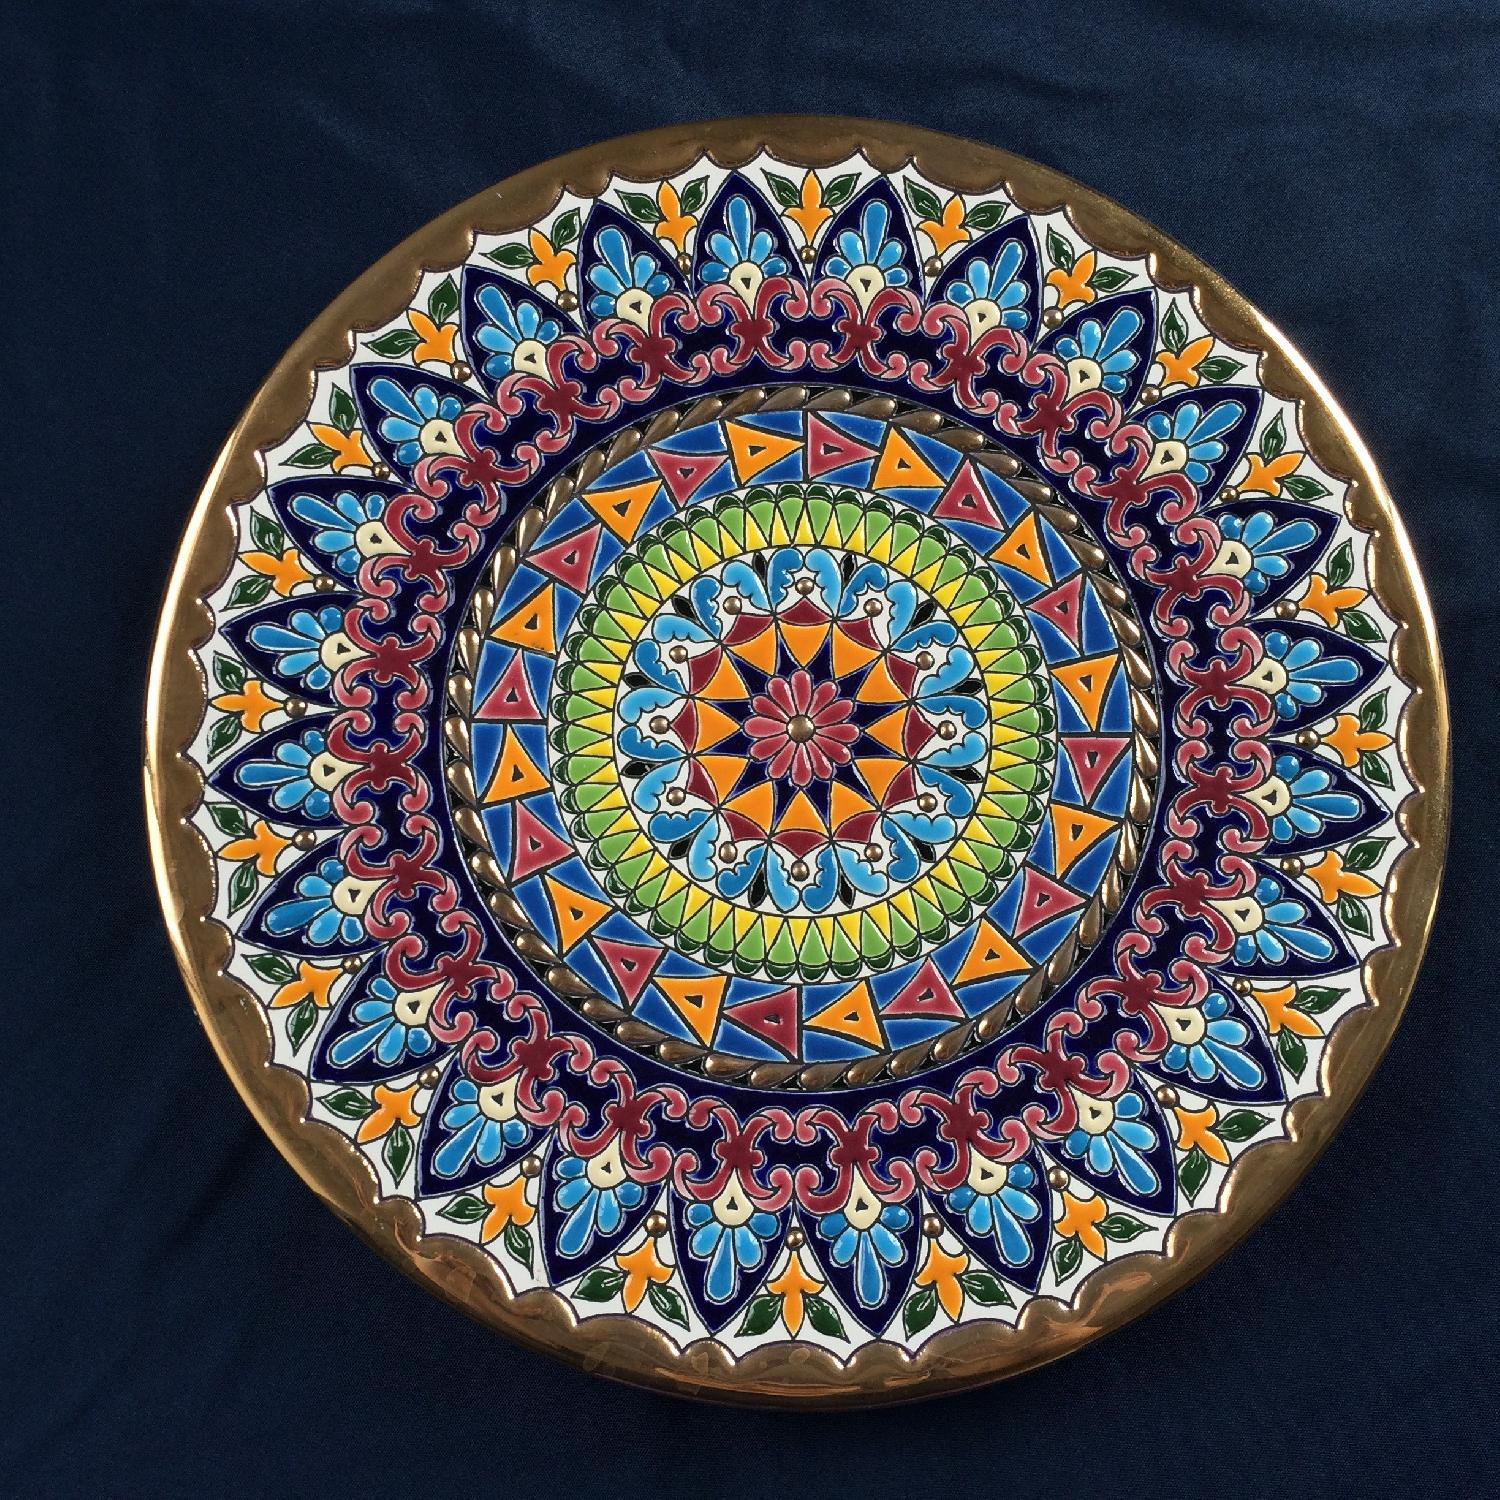 Artisanal Hand-Crafted Plate from Barcelona - image-1